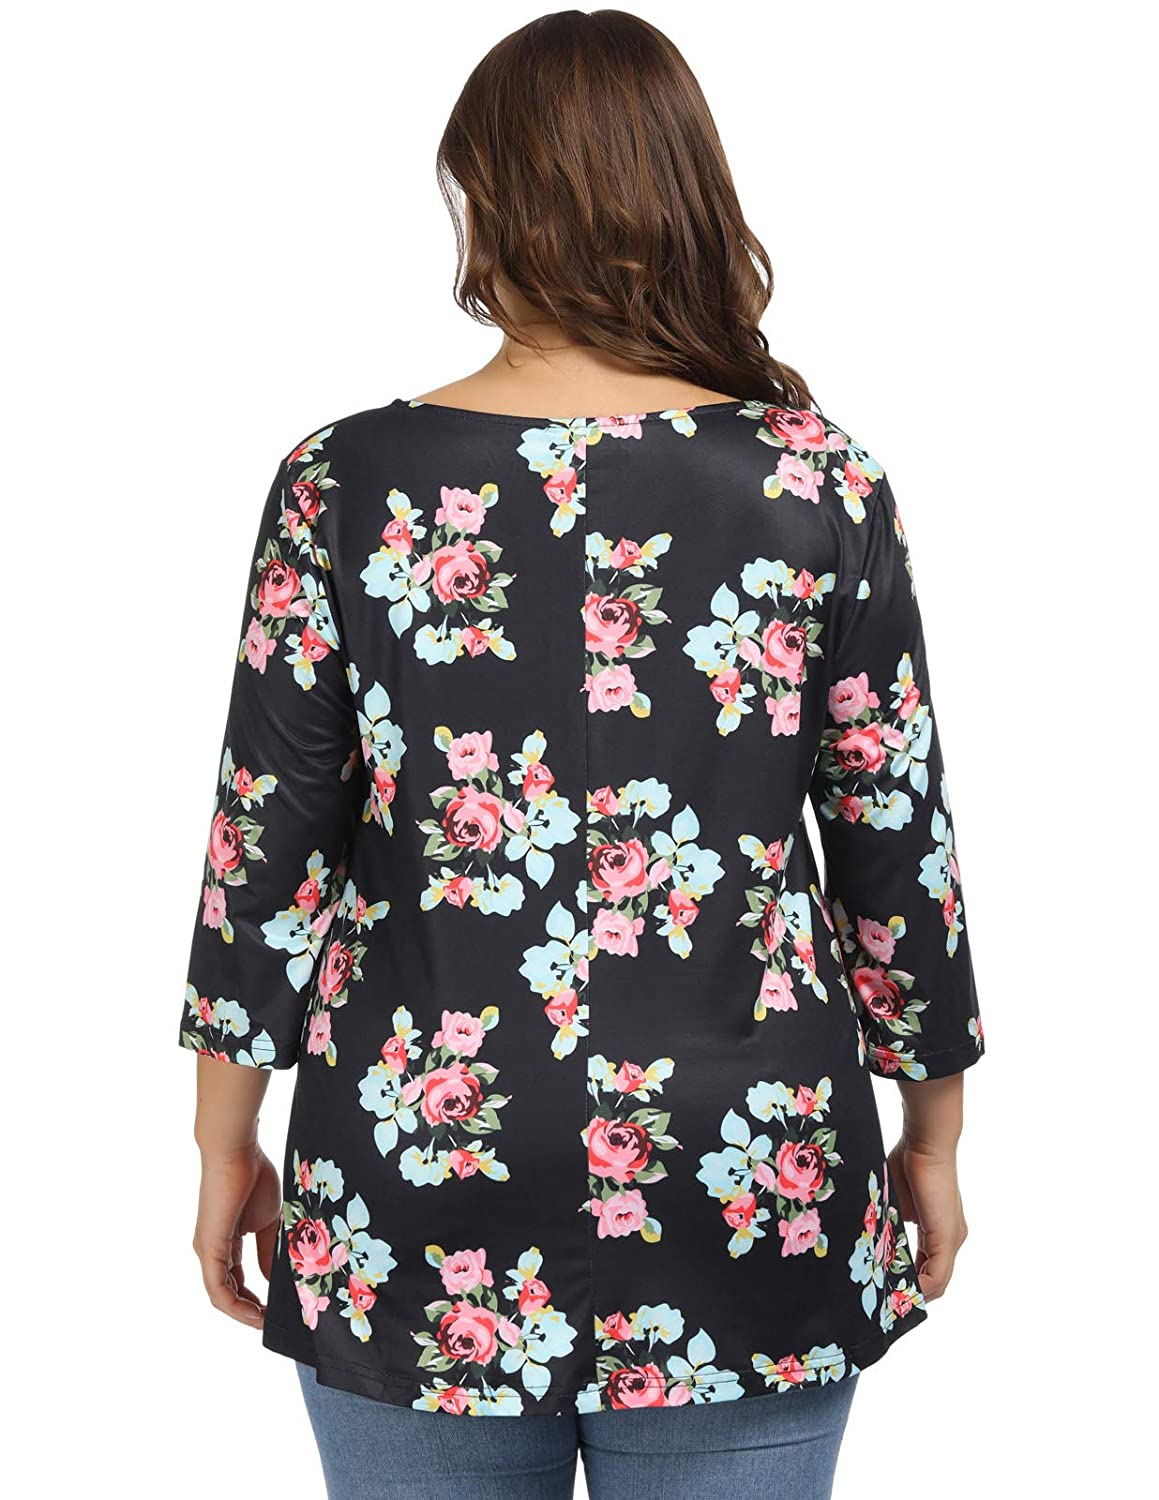 ded4afa36 Hanna Nikole Women's Plus Size Swing Tunic Top 3/4 Sleeve Floral Flare  Casual T-Shirt at Amazon Women's Clothing store: